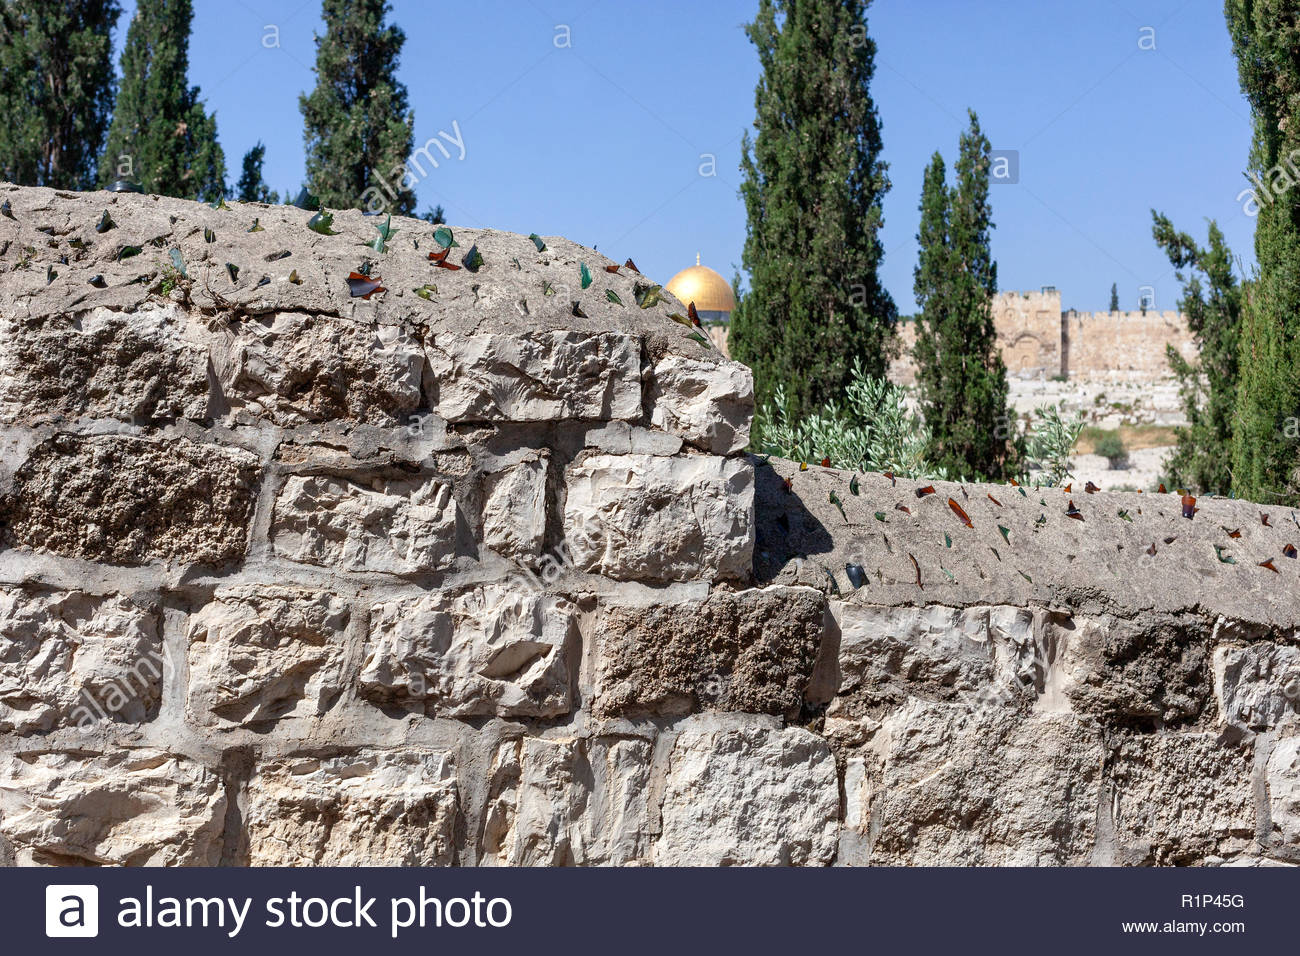 Glass Embedded in a Protective Stone Wall; Dome of the Rock and the Eastern Wall of Jerusalem in the background - Stock Image